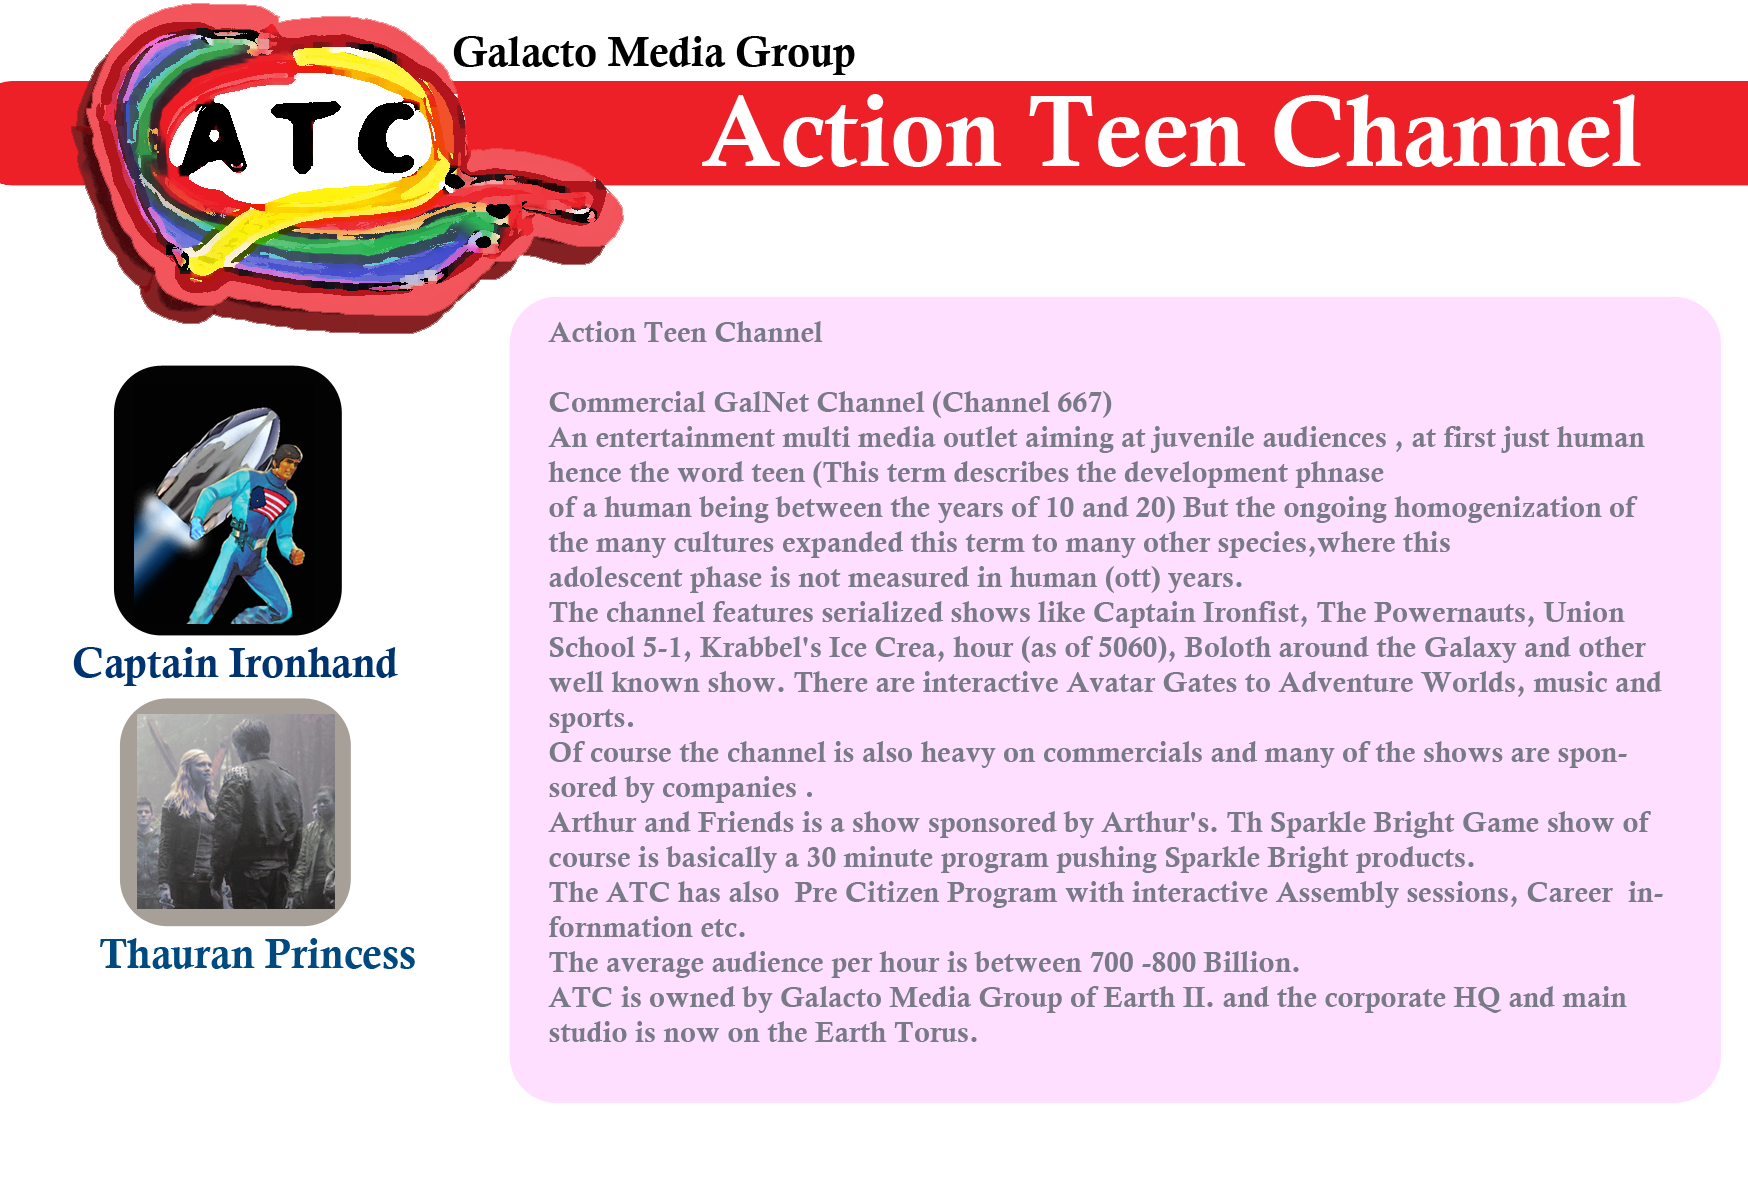 Action-Teen Channel